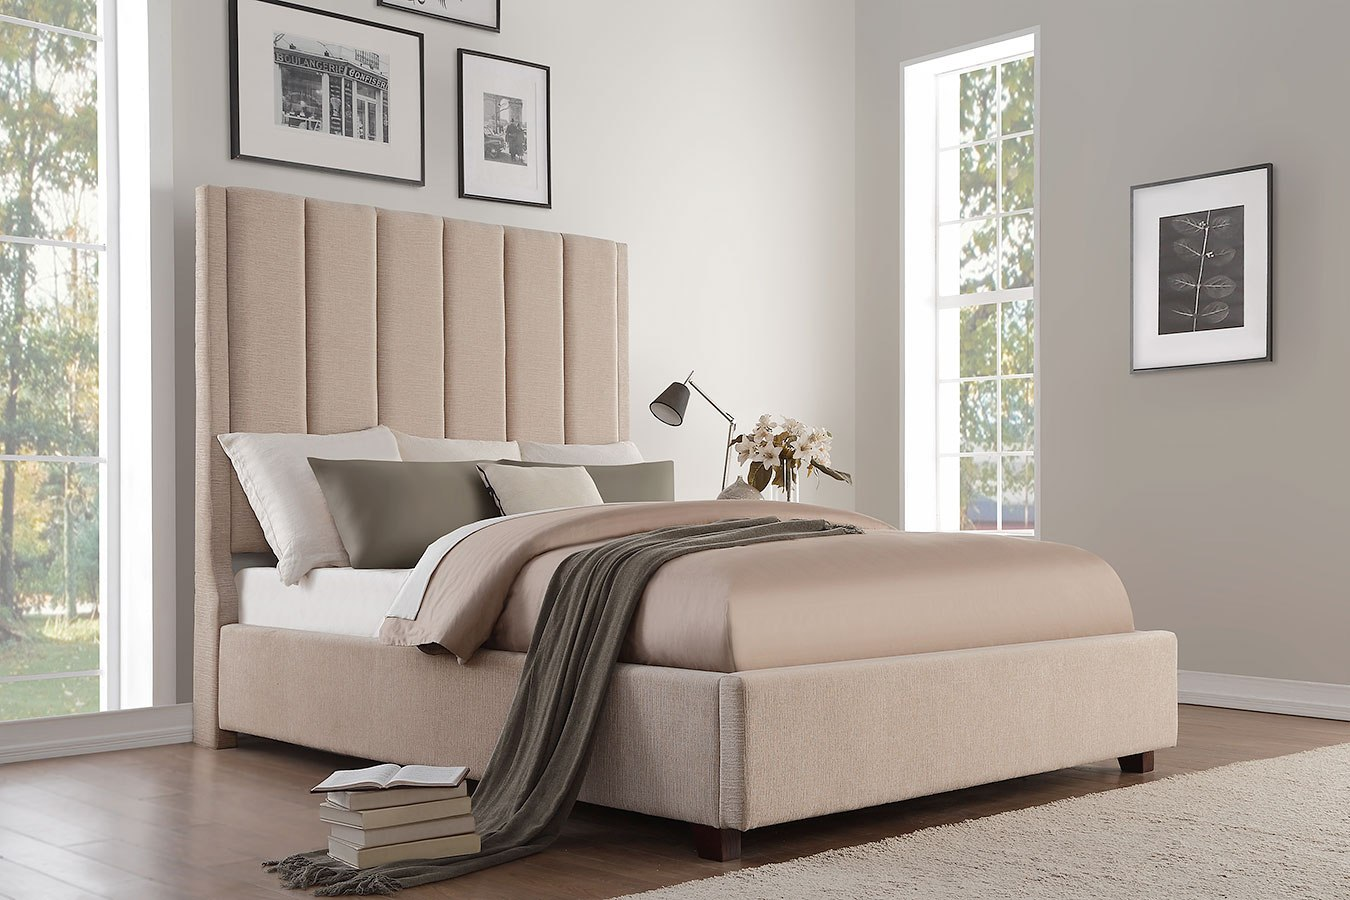 Neunan Beige Upholstered Bed Homelegance Furniture Cart